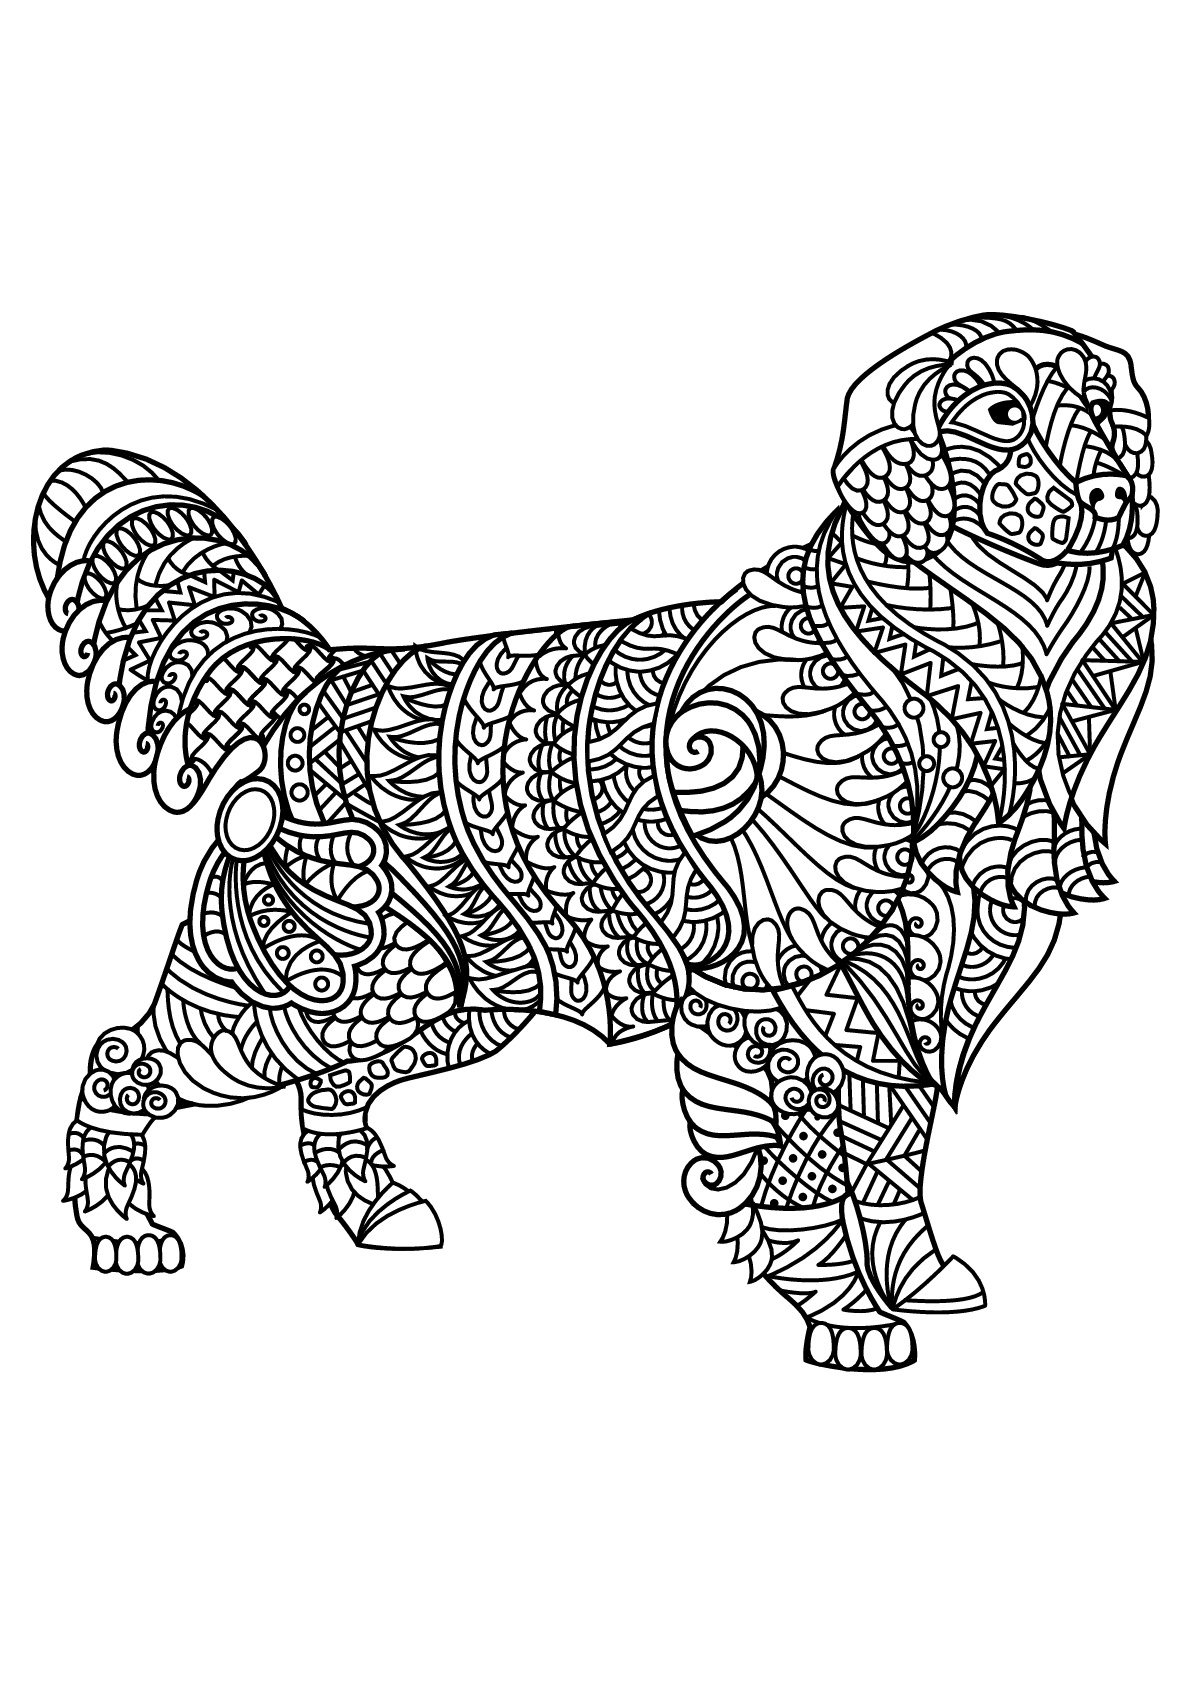 colouring pages of dog free book dog labrador dogs adult coloring pages pages dog colouring of